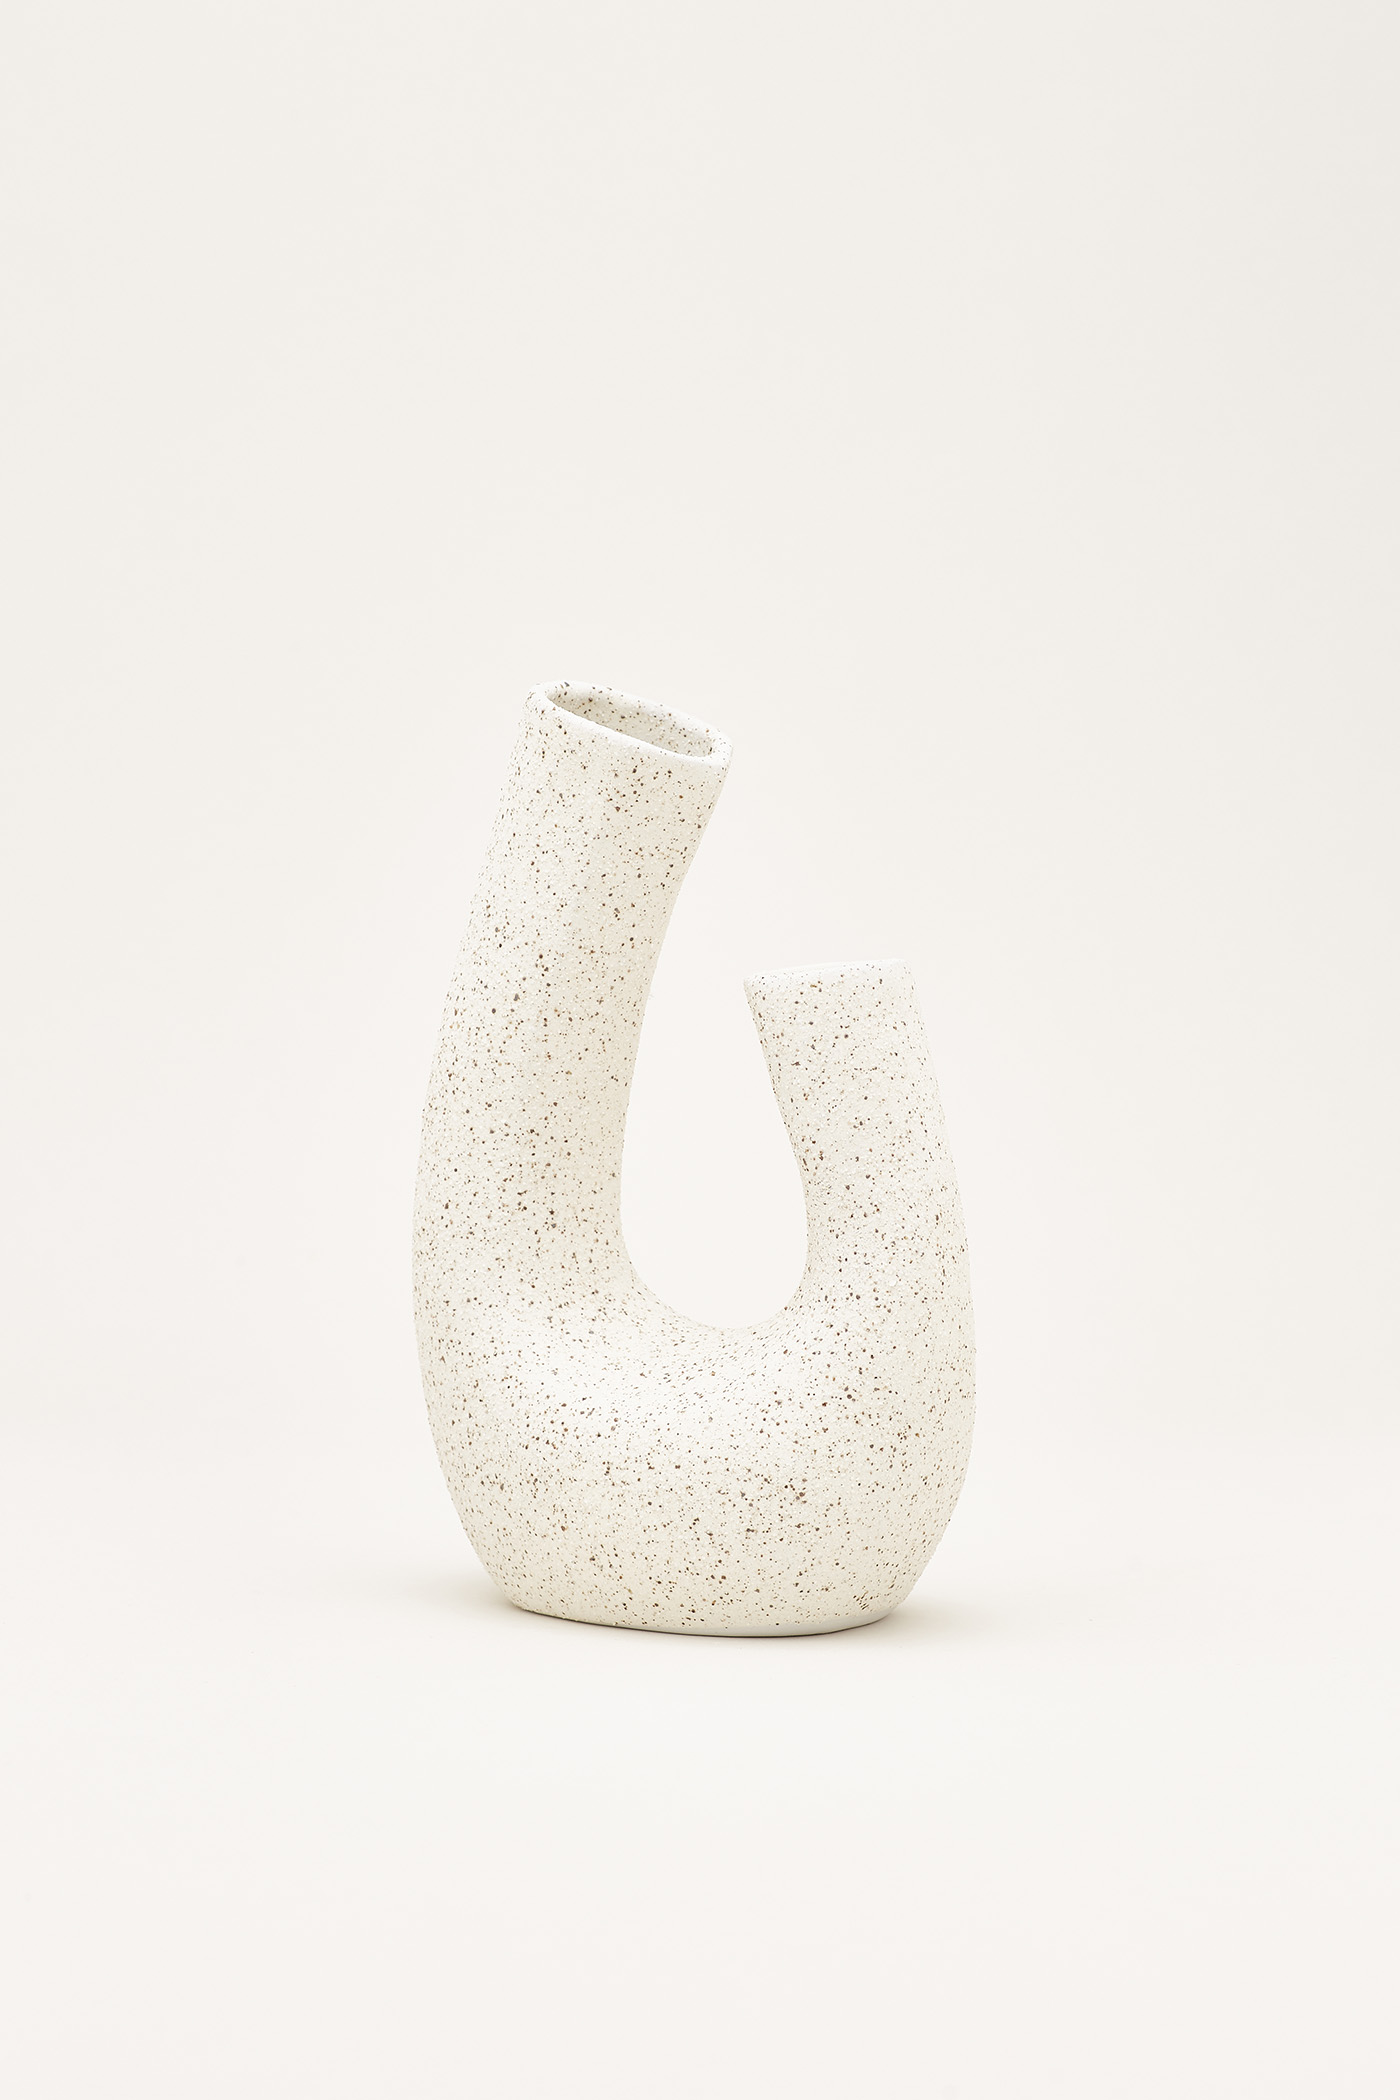 Kozue U-Shaped Large Vase